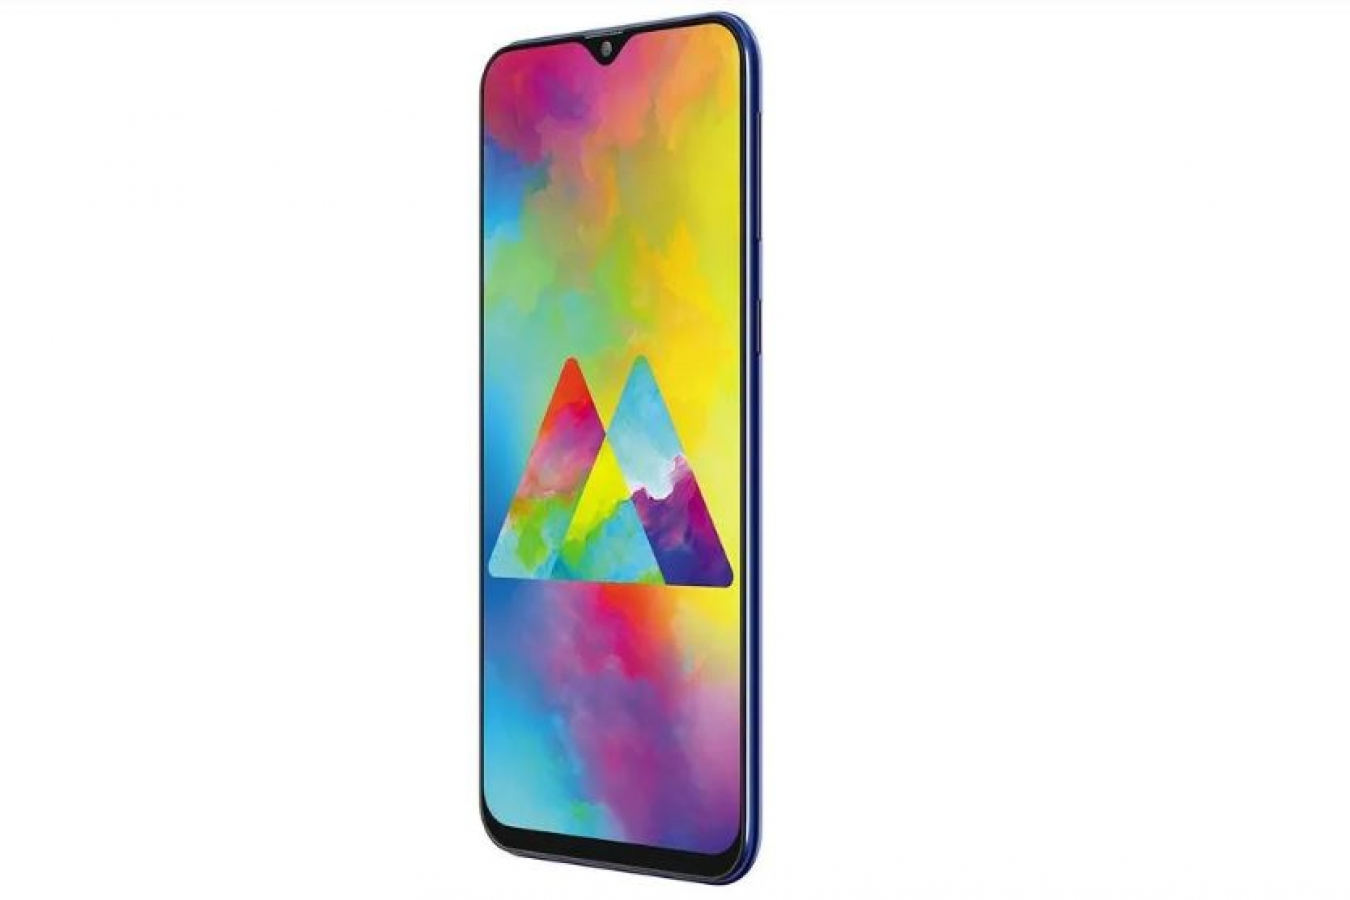 Samsung Galaxy M20s in the Works With 5,830mAh Battery: Report